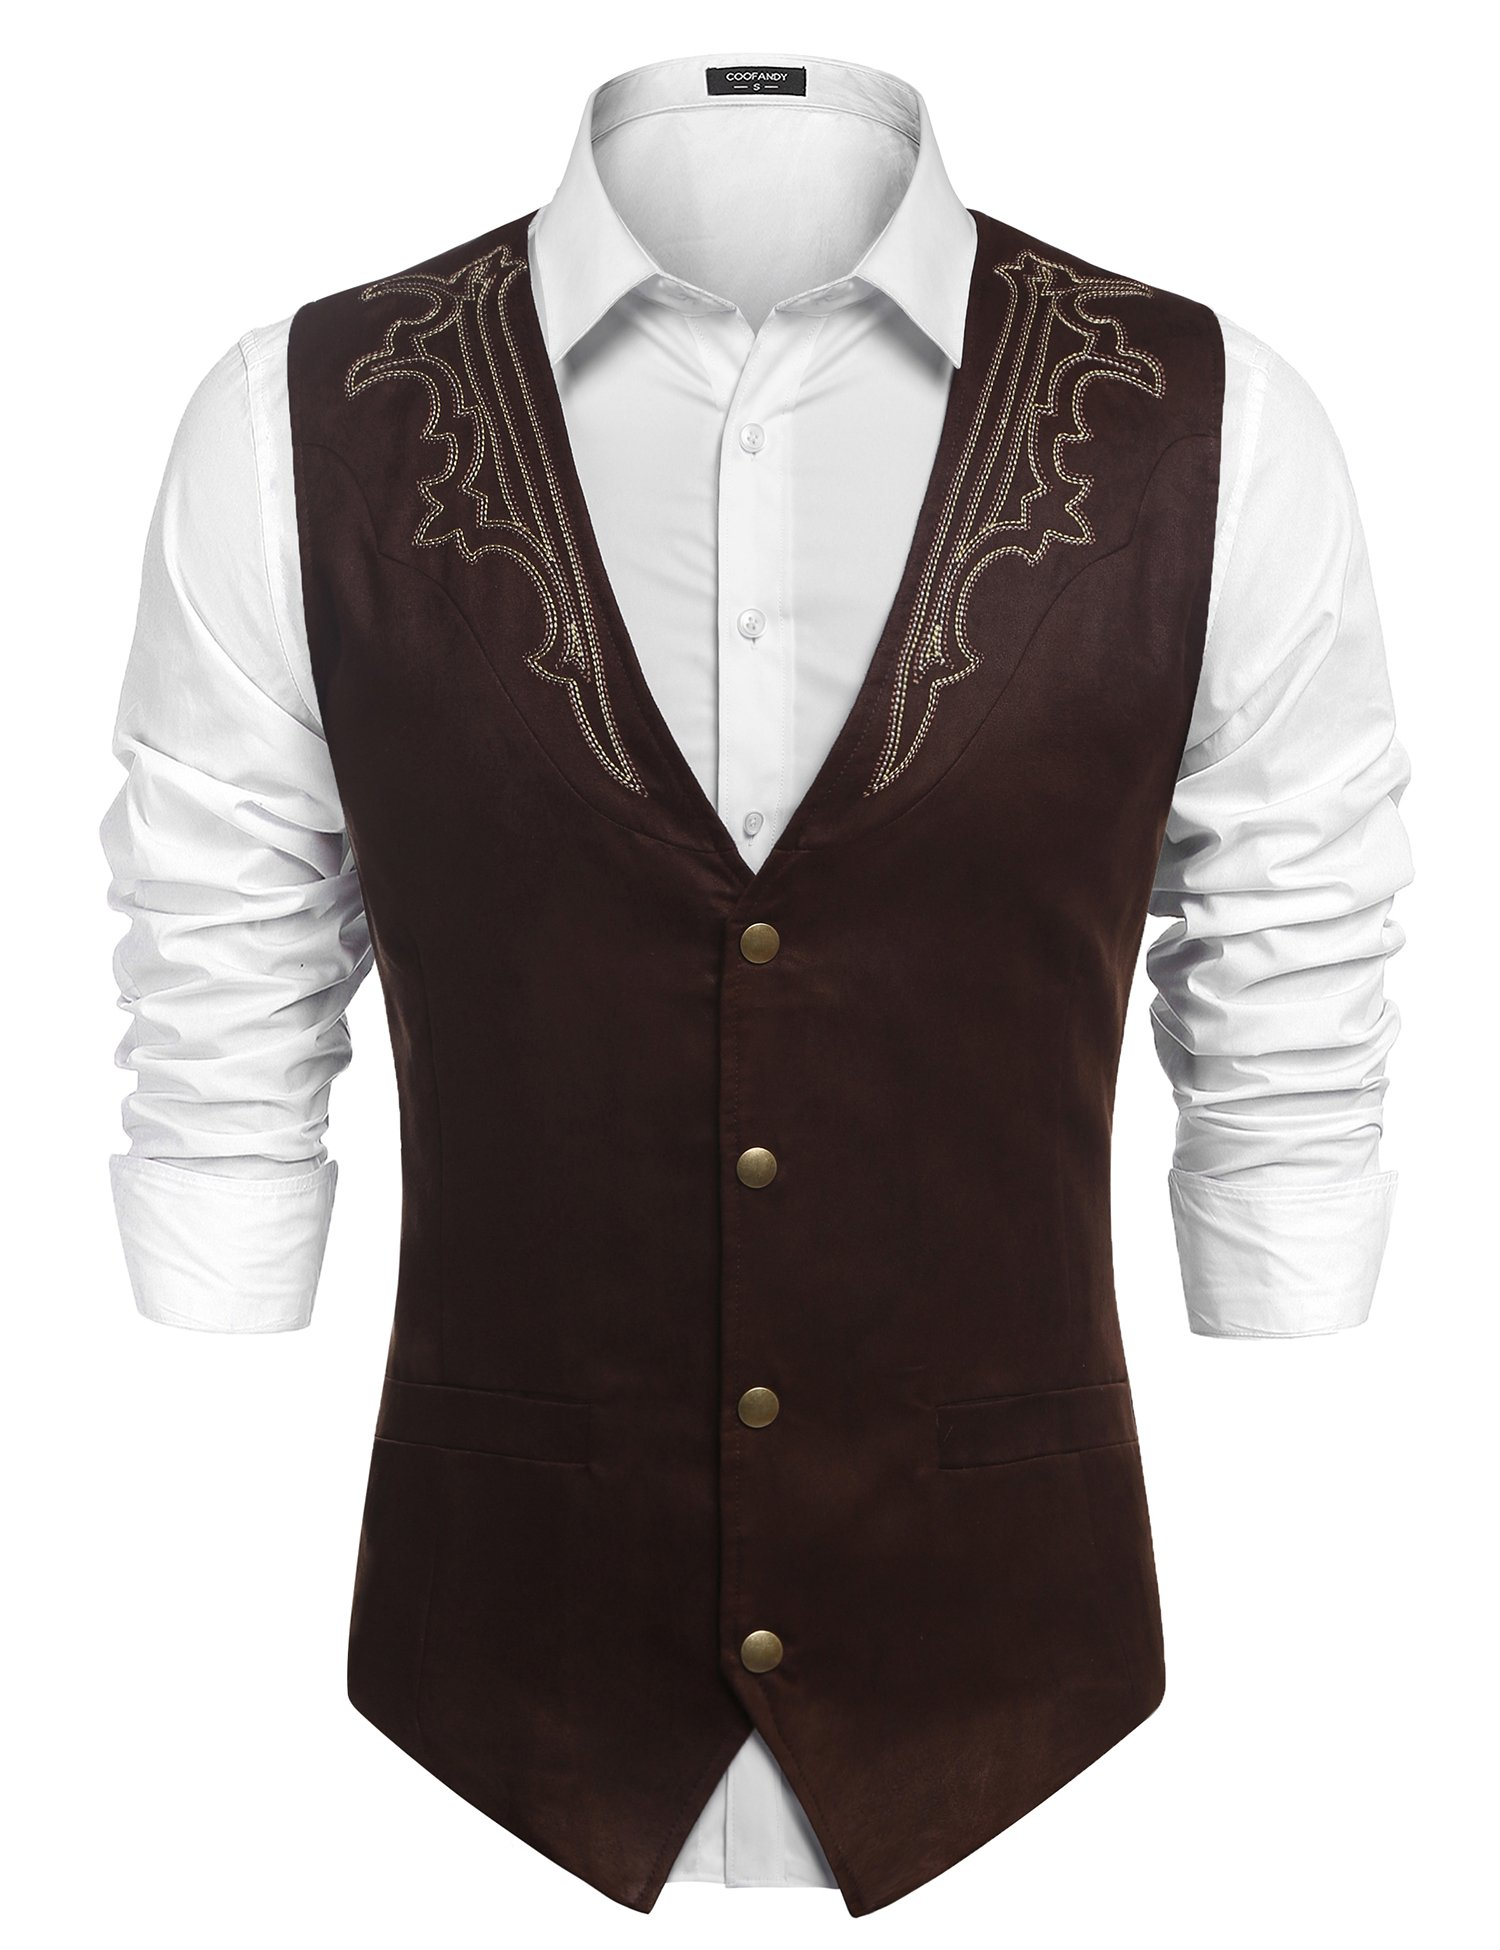 COOFANDY Men's Casual Suede Leather Vest Single-Breasted Vest Jacket